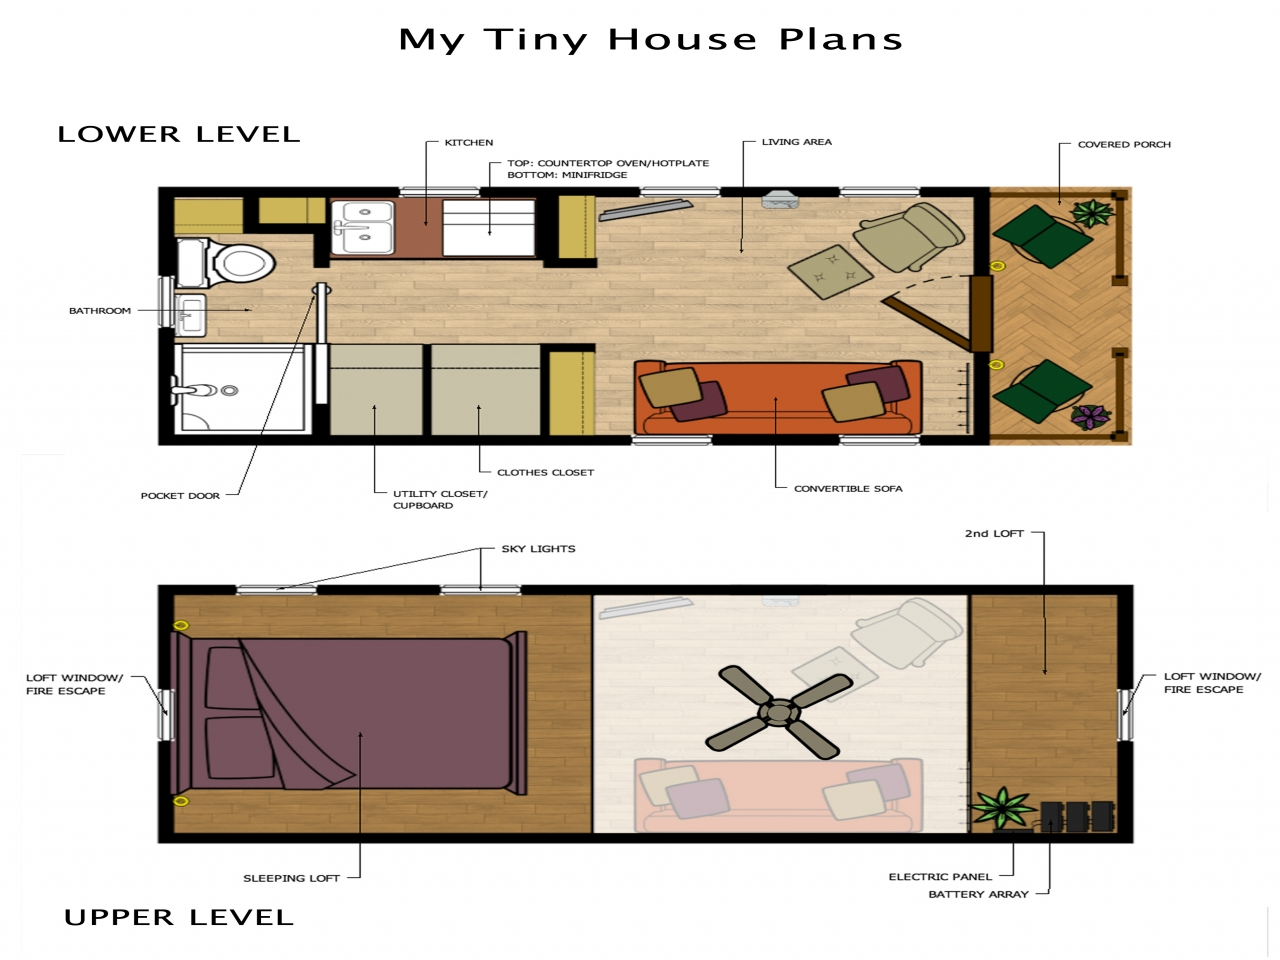 Tiny loft house floor plans tiny house plans with loft for Ranch home plans with loft